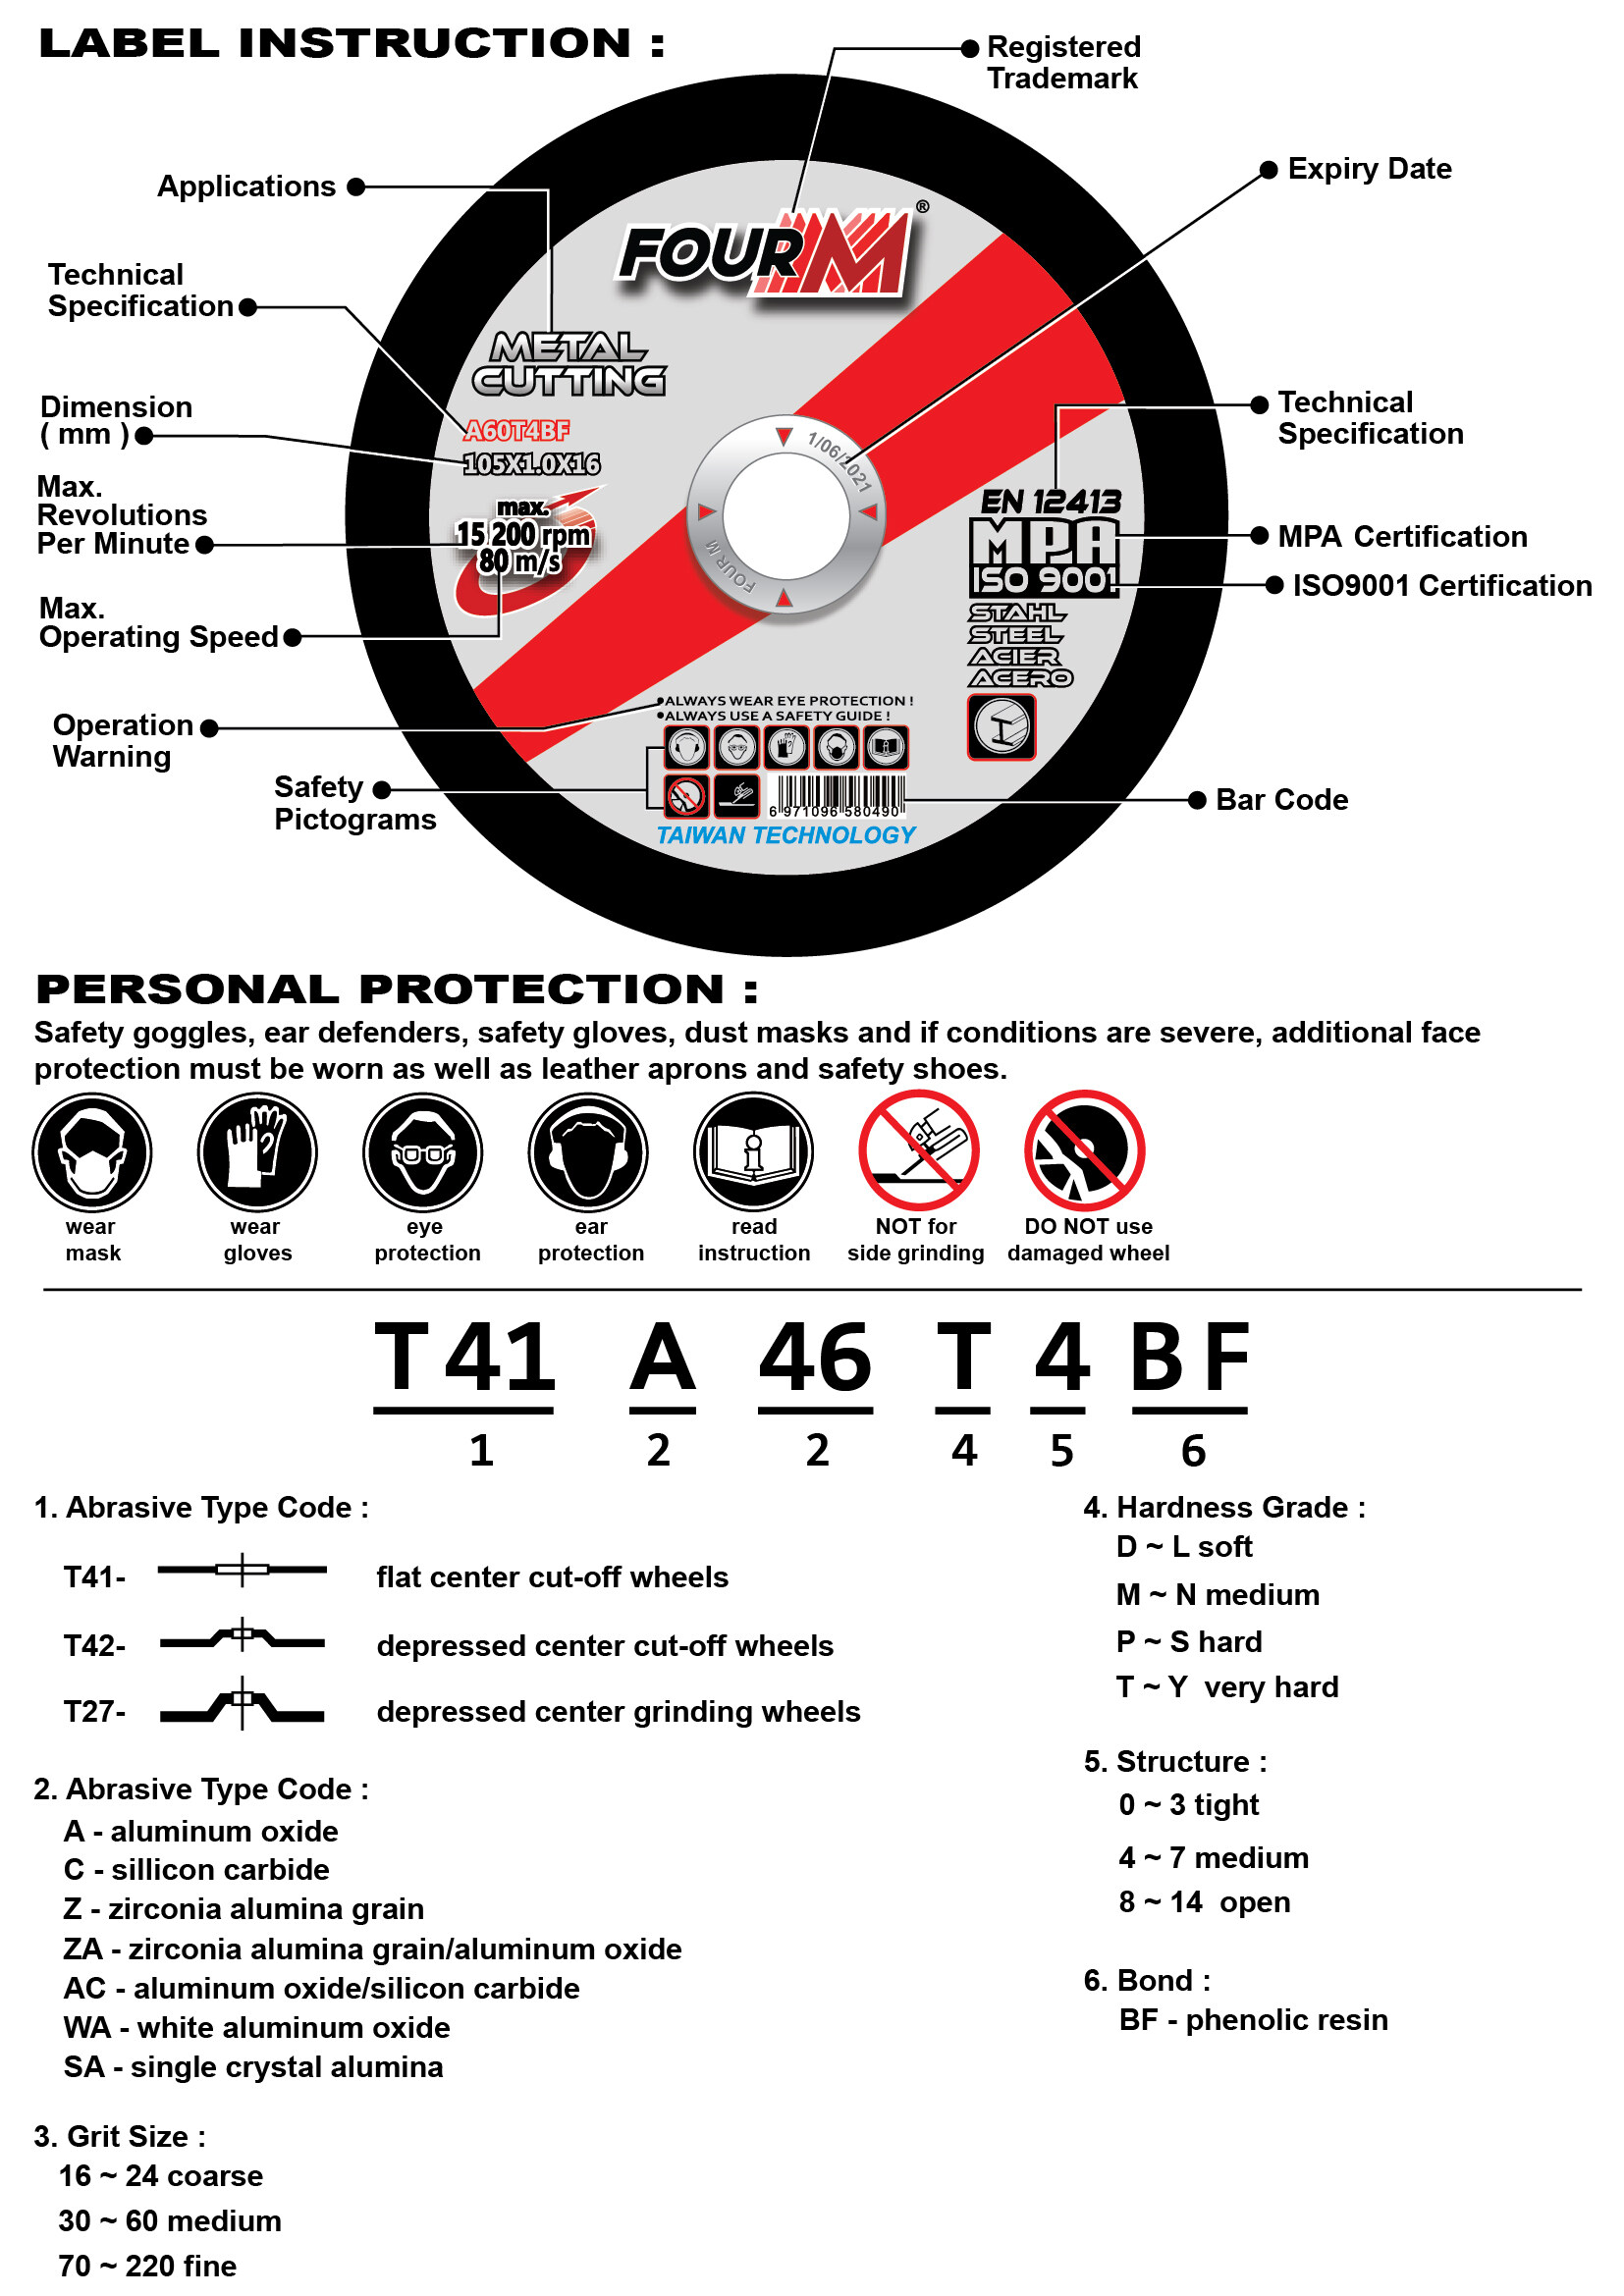 iso 9001 certificate safety protection bar sander speed ring heavy duty metal cutting disc high press cut off saw holder hold holding stainless steel grinder grinding wheel roll roller rolling tool handle blade plate power cutter drilling milling slicer